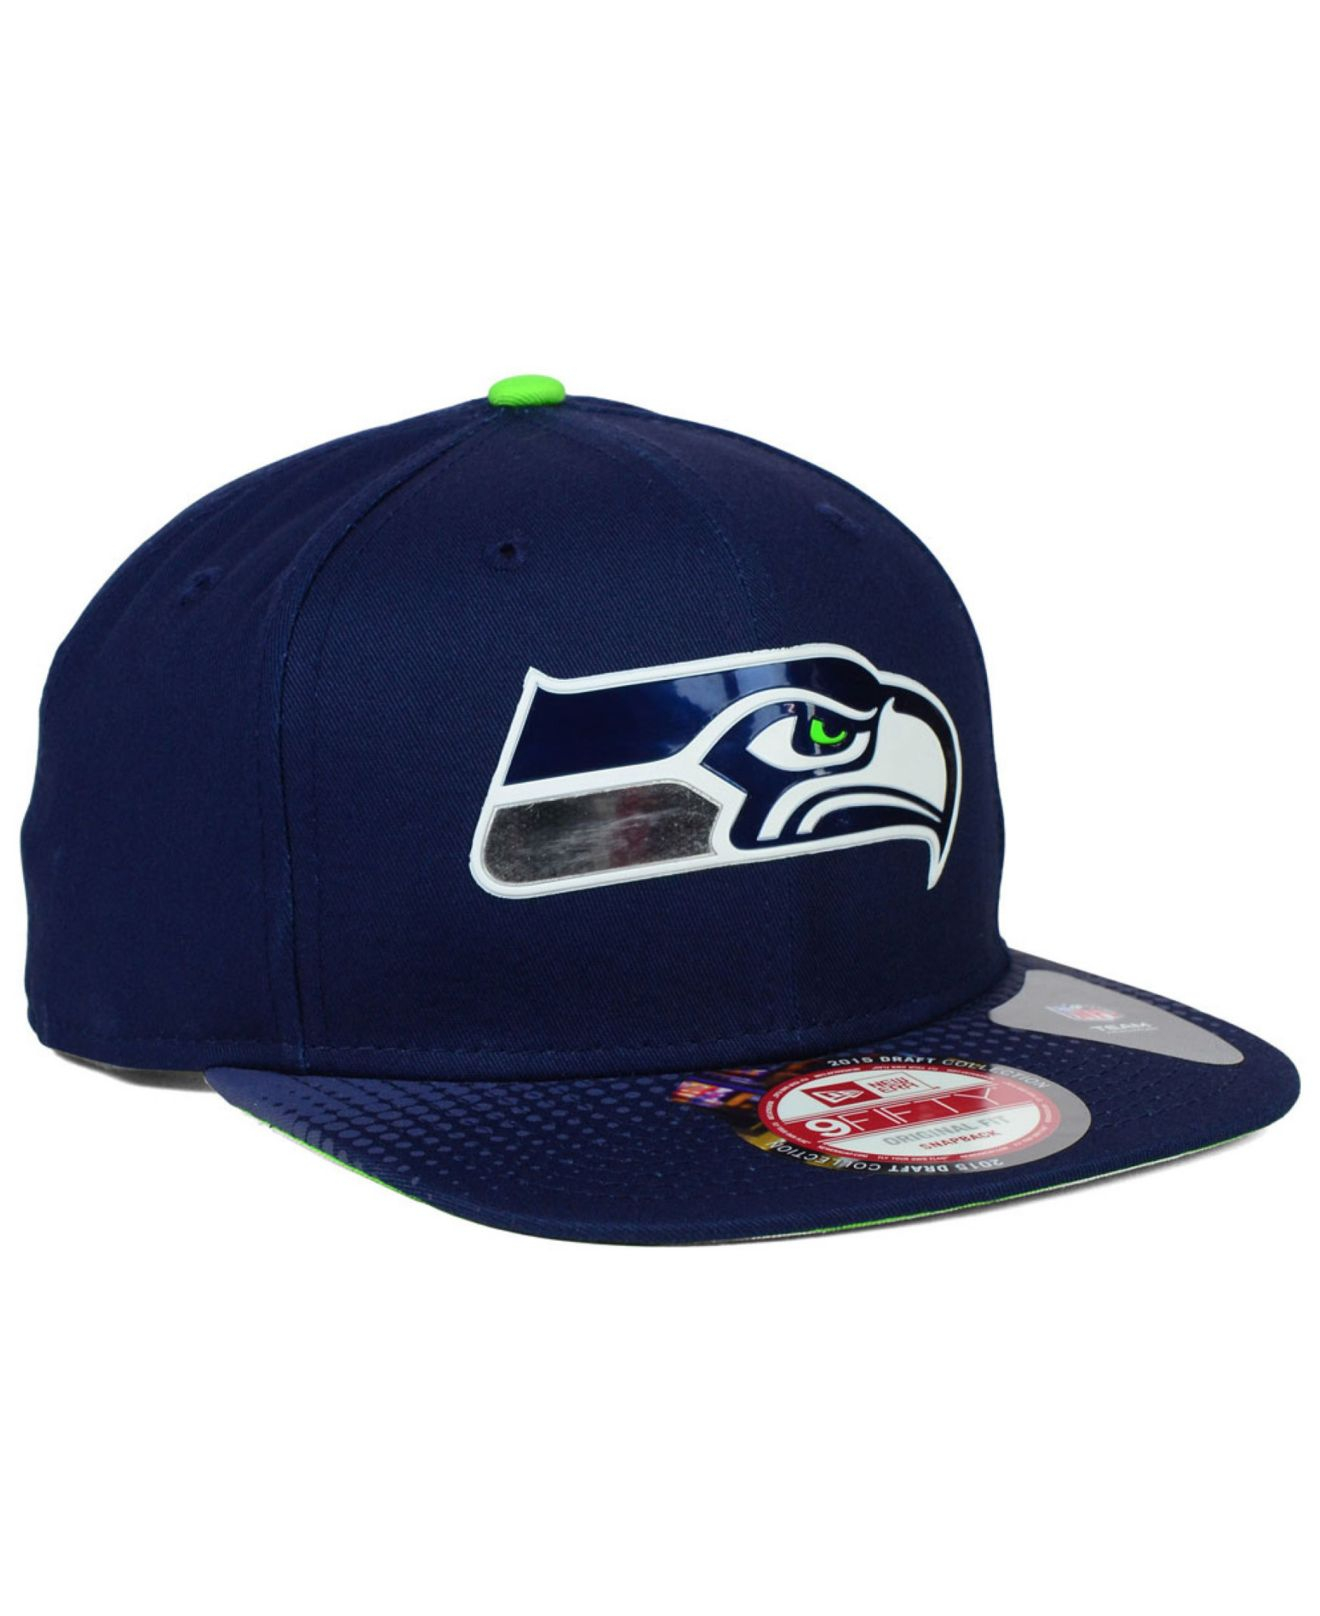 new product d2f48 dcf73 KTZ Seattle Seahawks 2015 Nfl Draft 9fifty Snapback Cap in Blue for ...